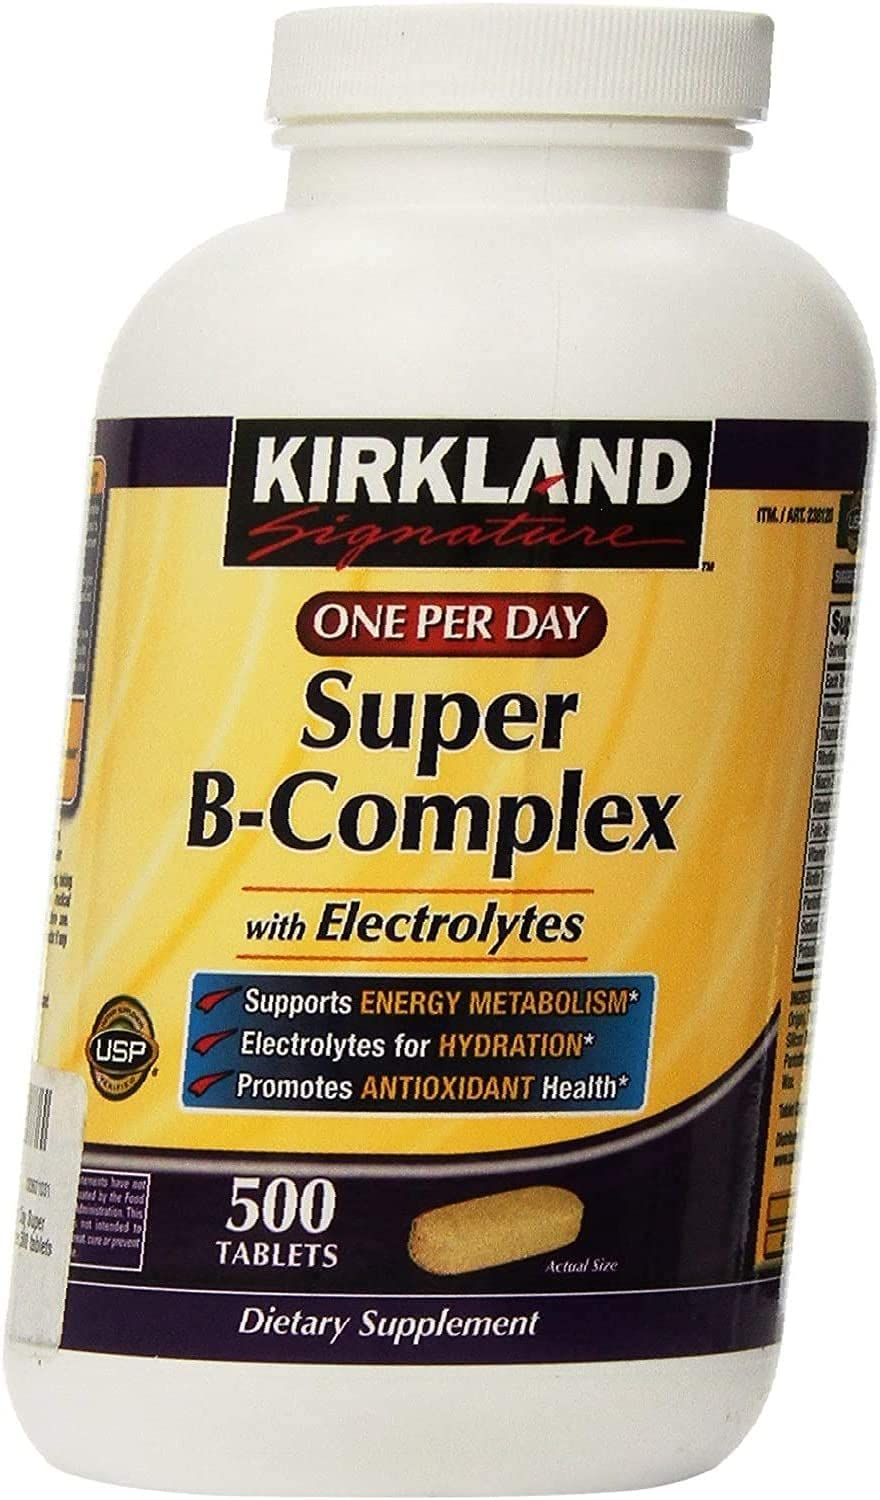 Kirkland Signature One Per Day B-Complex Cheap mail order sales with Super Electrolytes Rapid rise